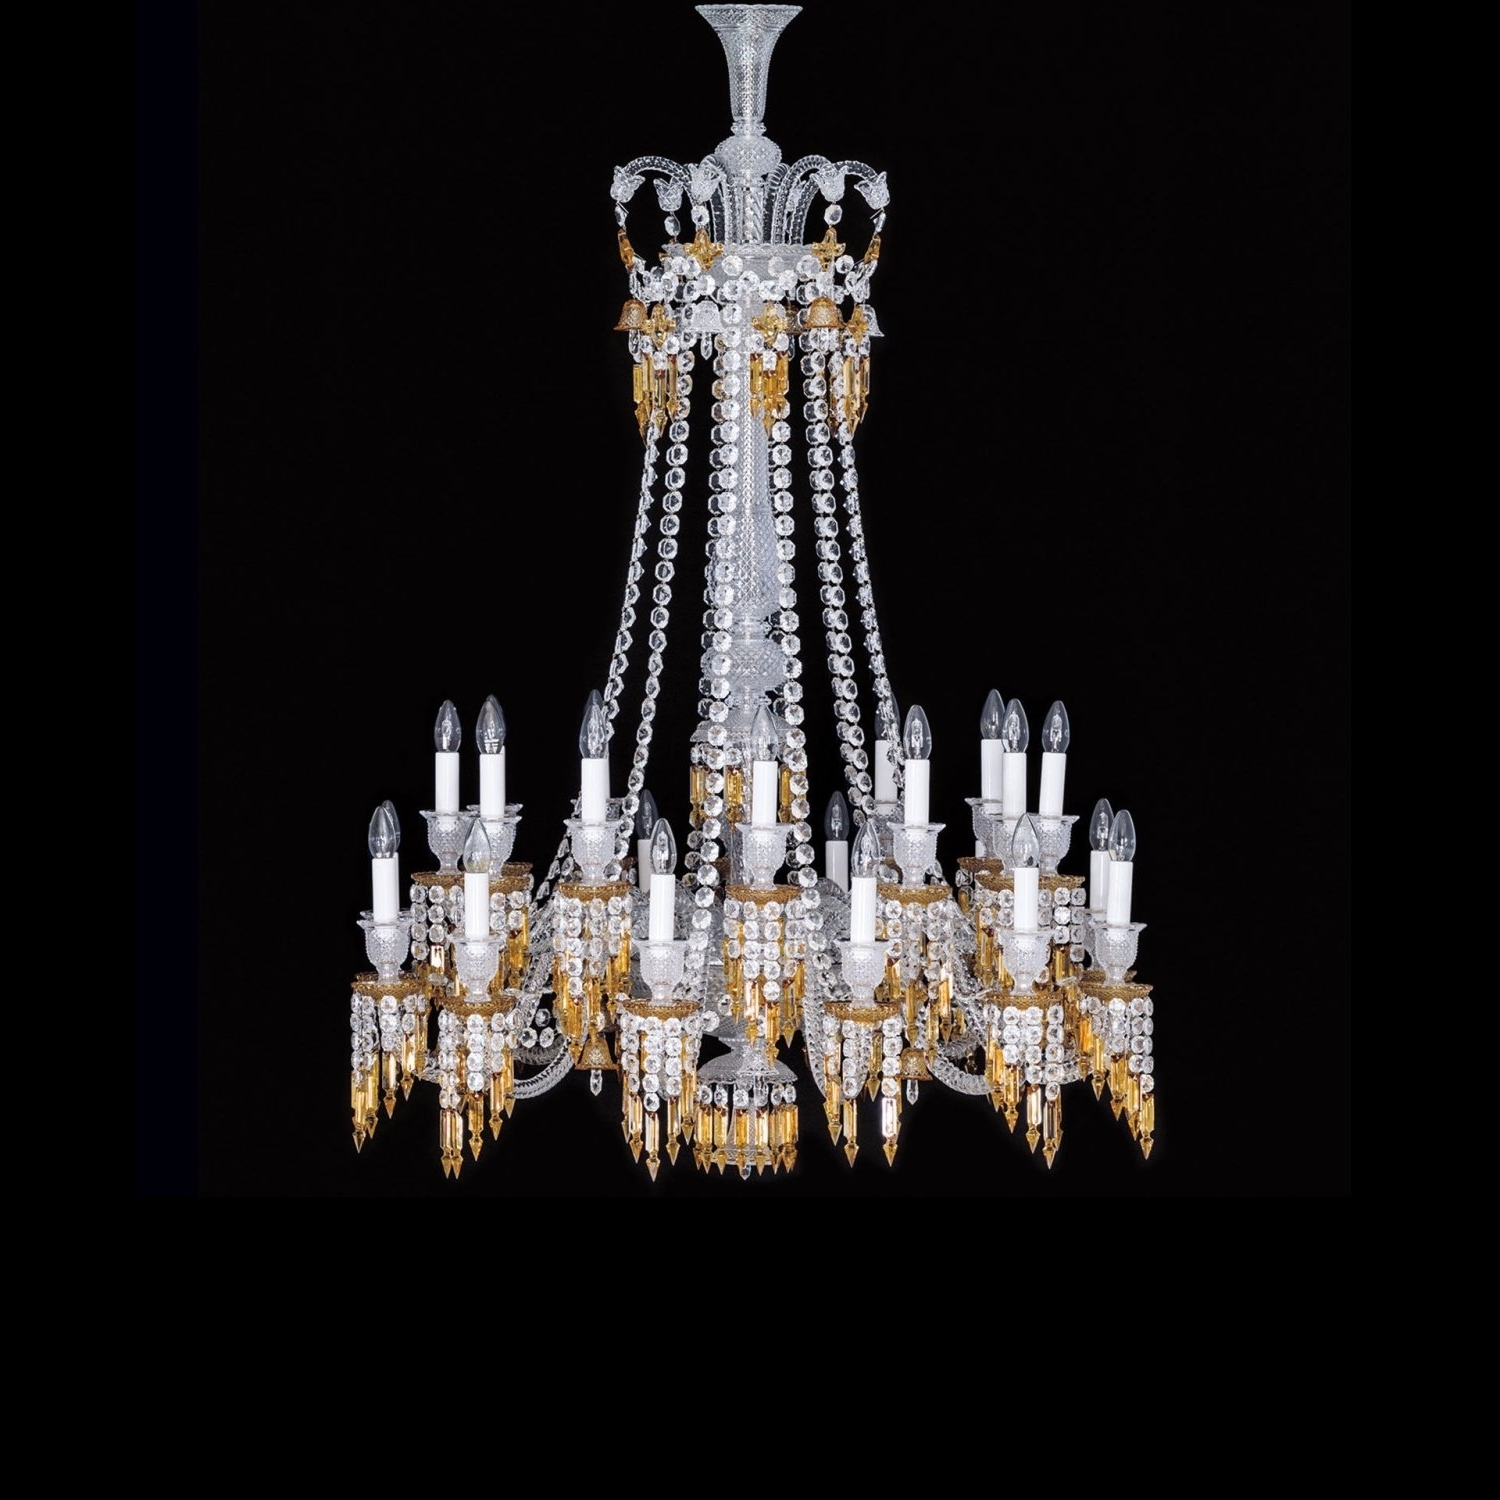 Chandelier 24L Baccarat Zenith Charleston 2809432 With Regard To Well Known Long Chandelier Light (View 4 of 20)